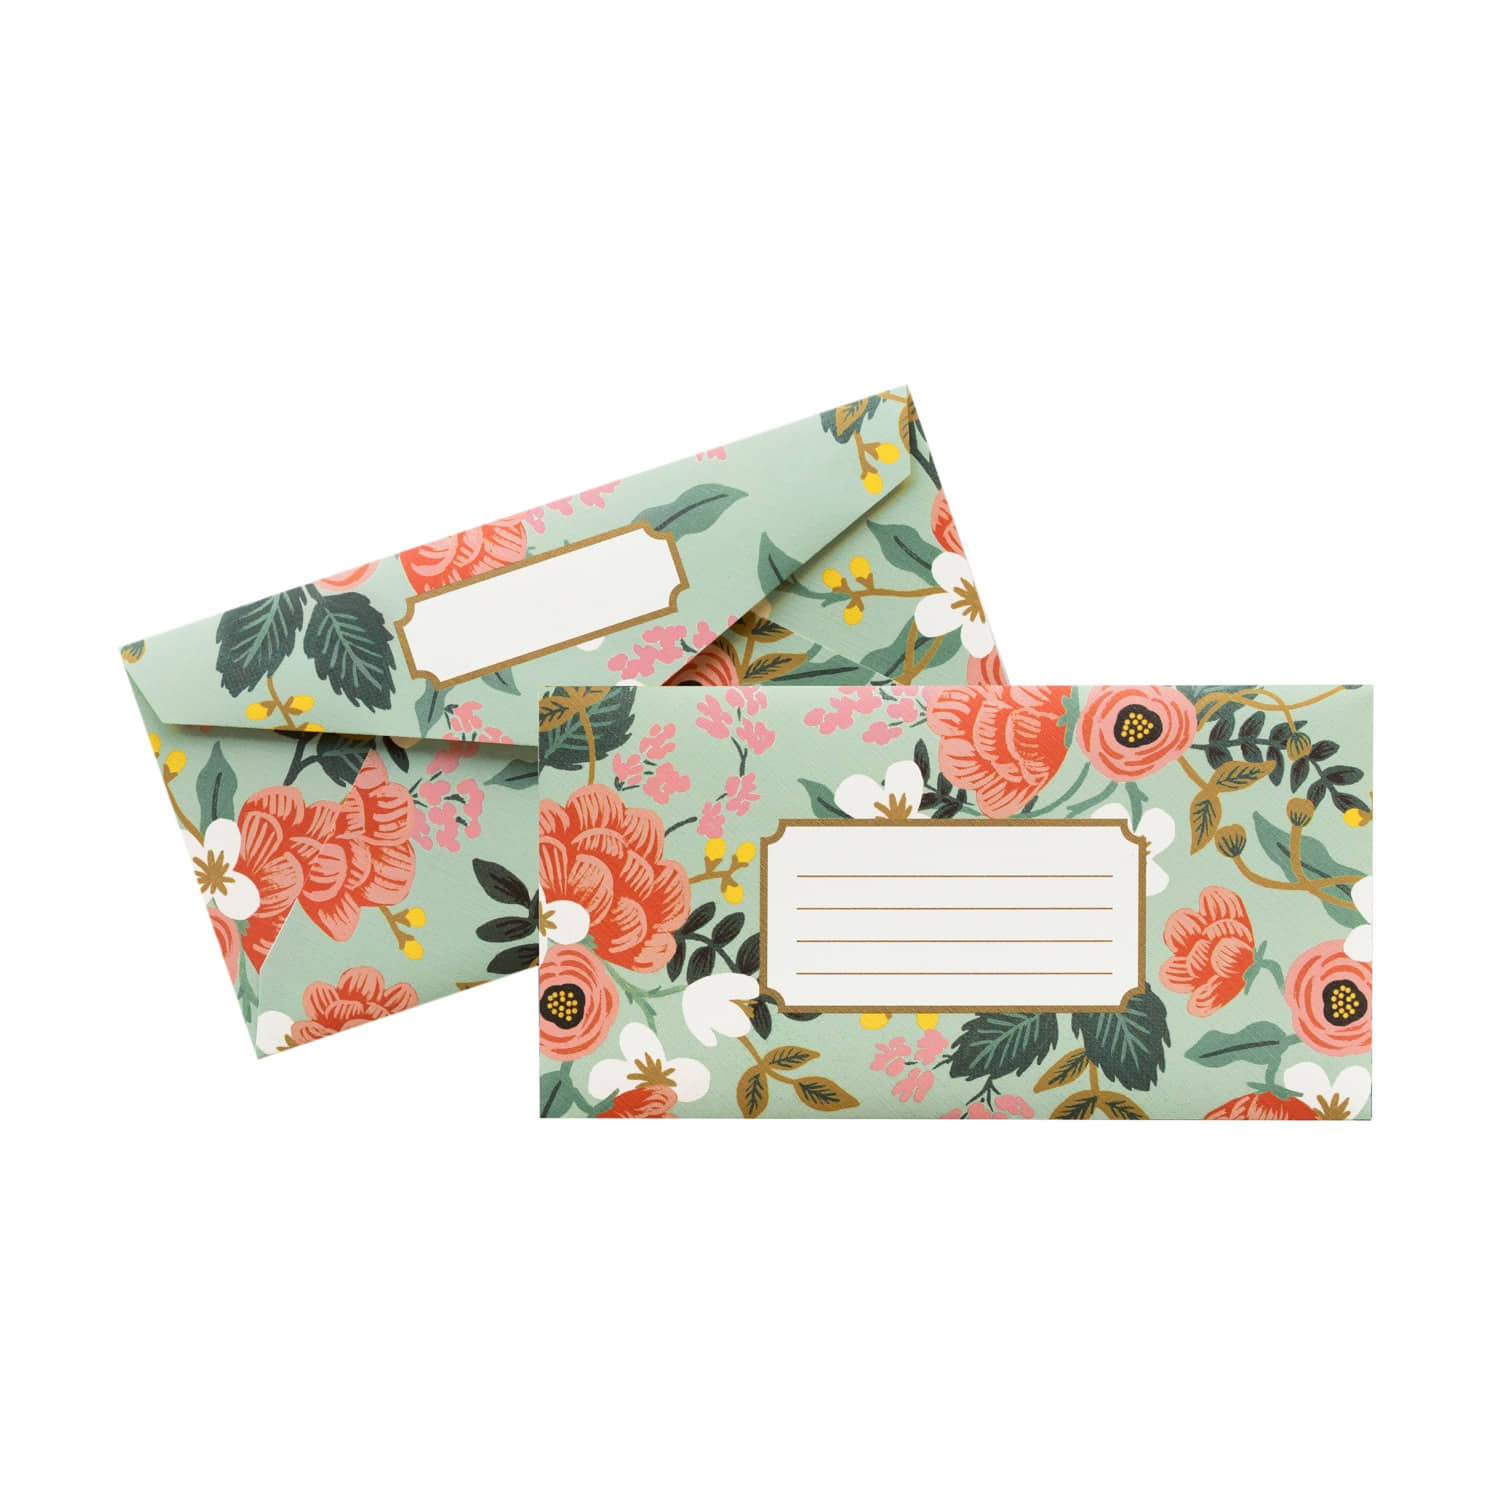 [Rifle Paper Co.] Mint Birch Monarch Envelope set of 5